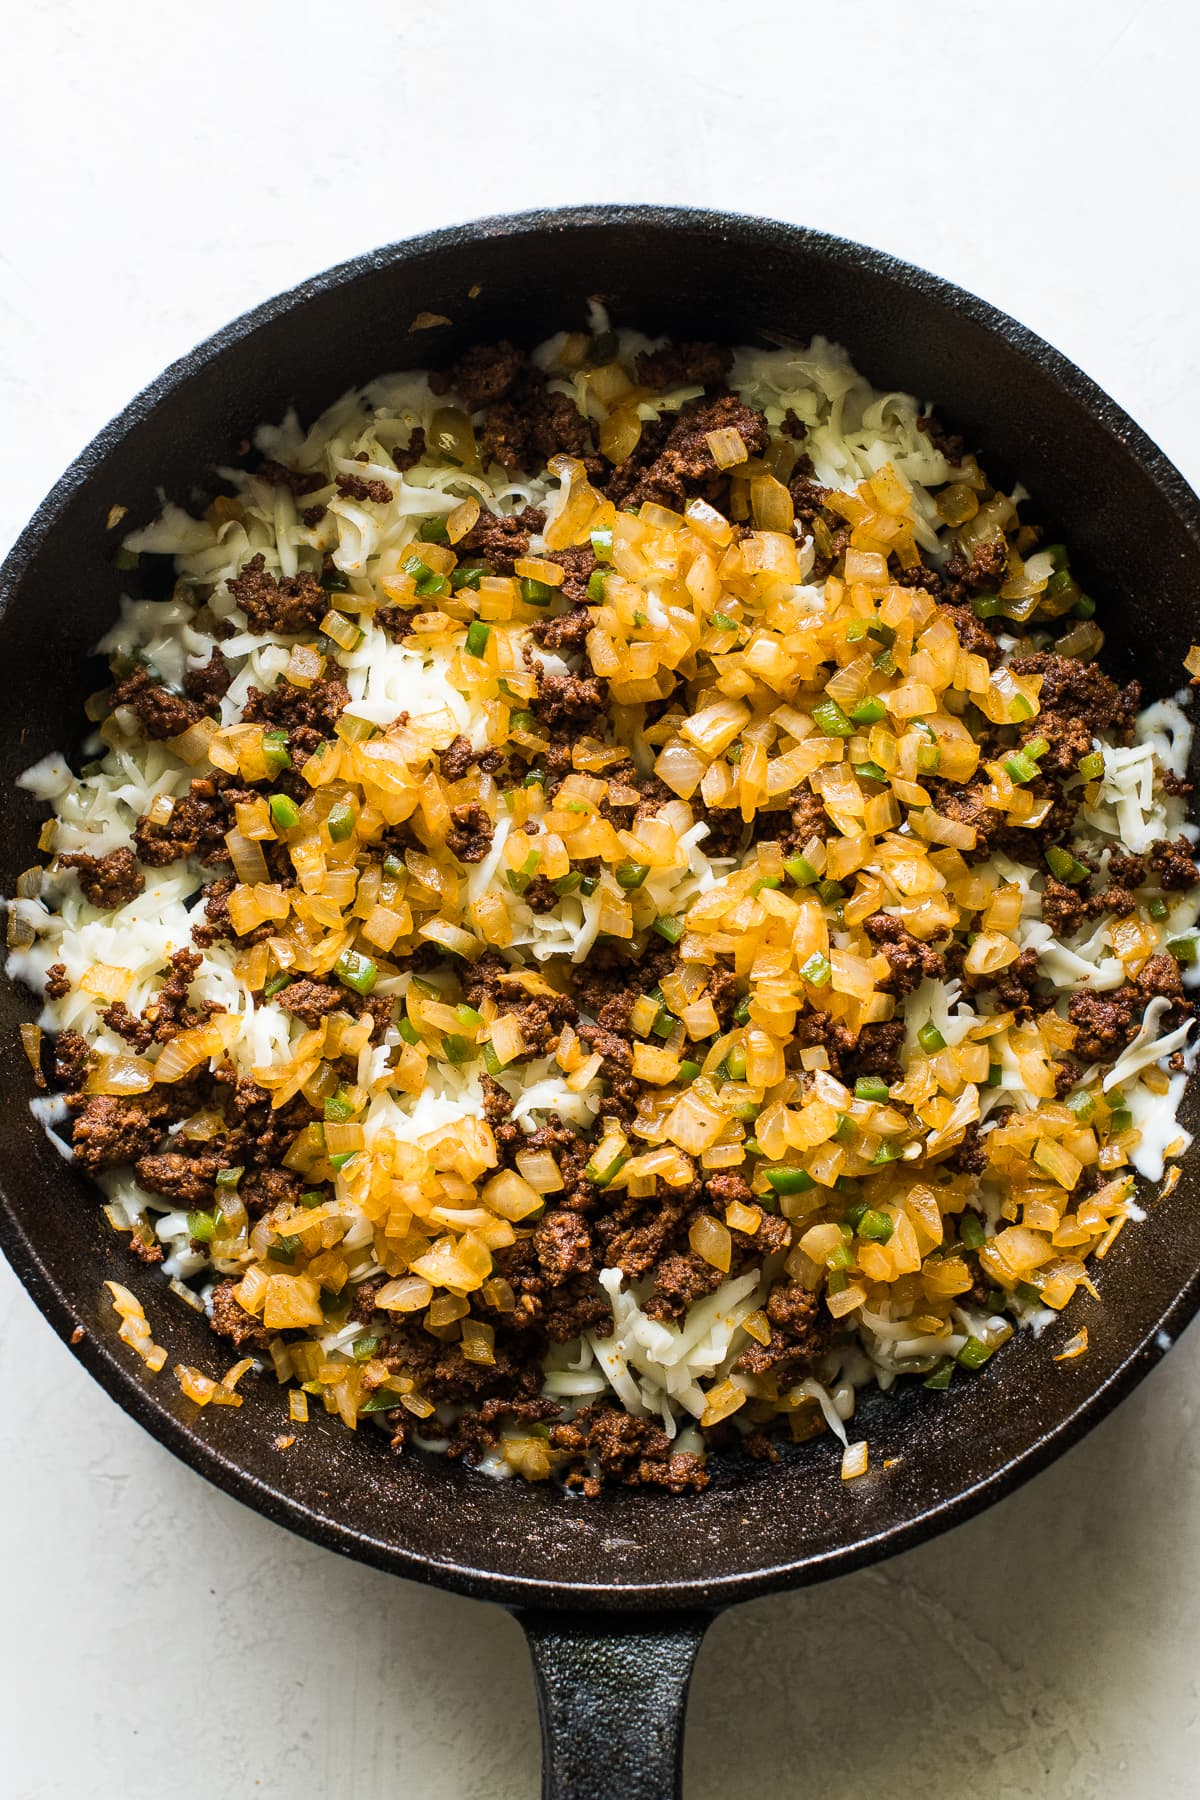 Sauteed onions, peppers, and chorizo in a skillet for queso fundido.